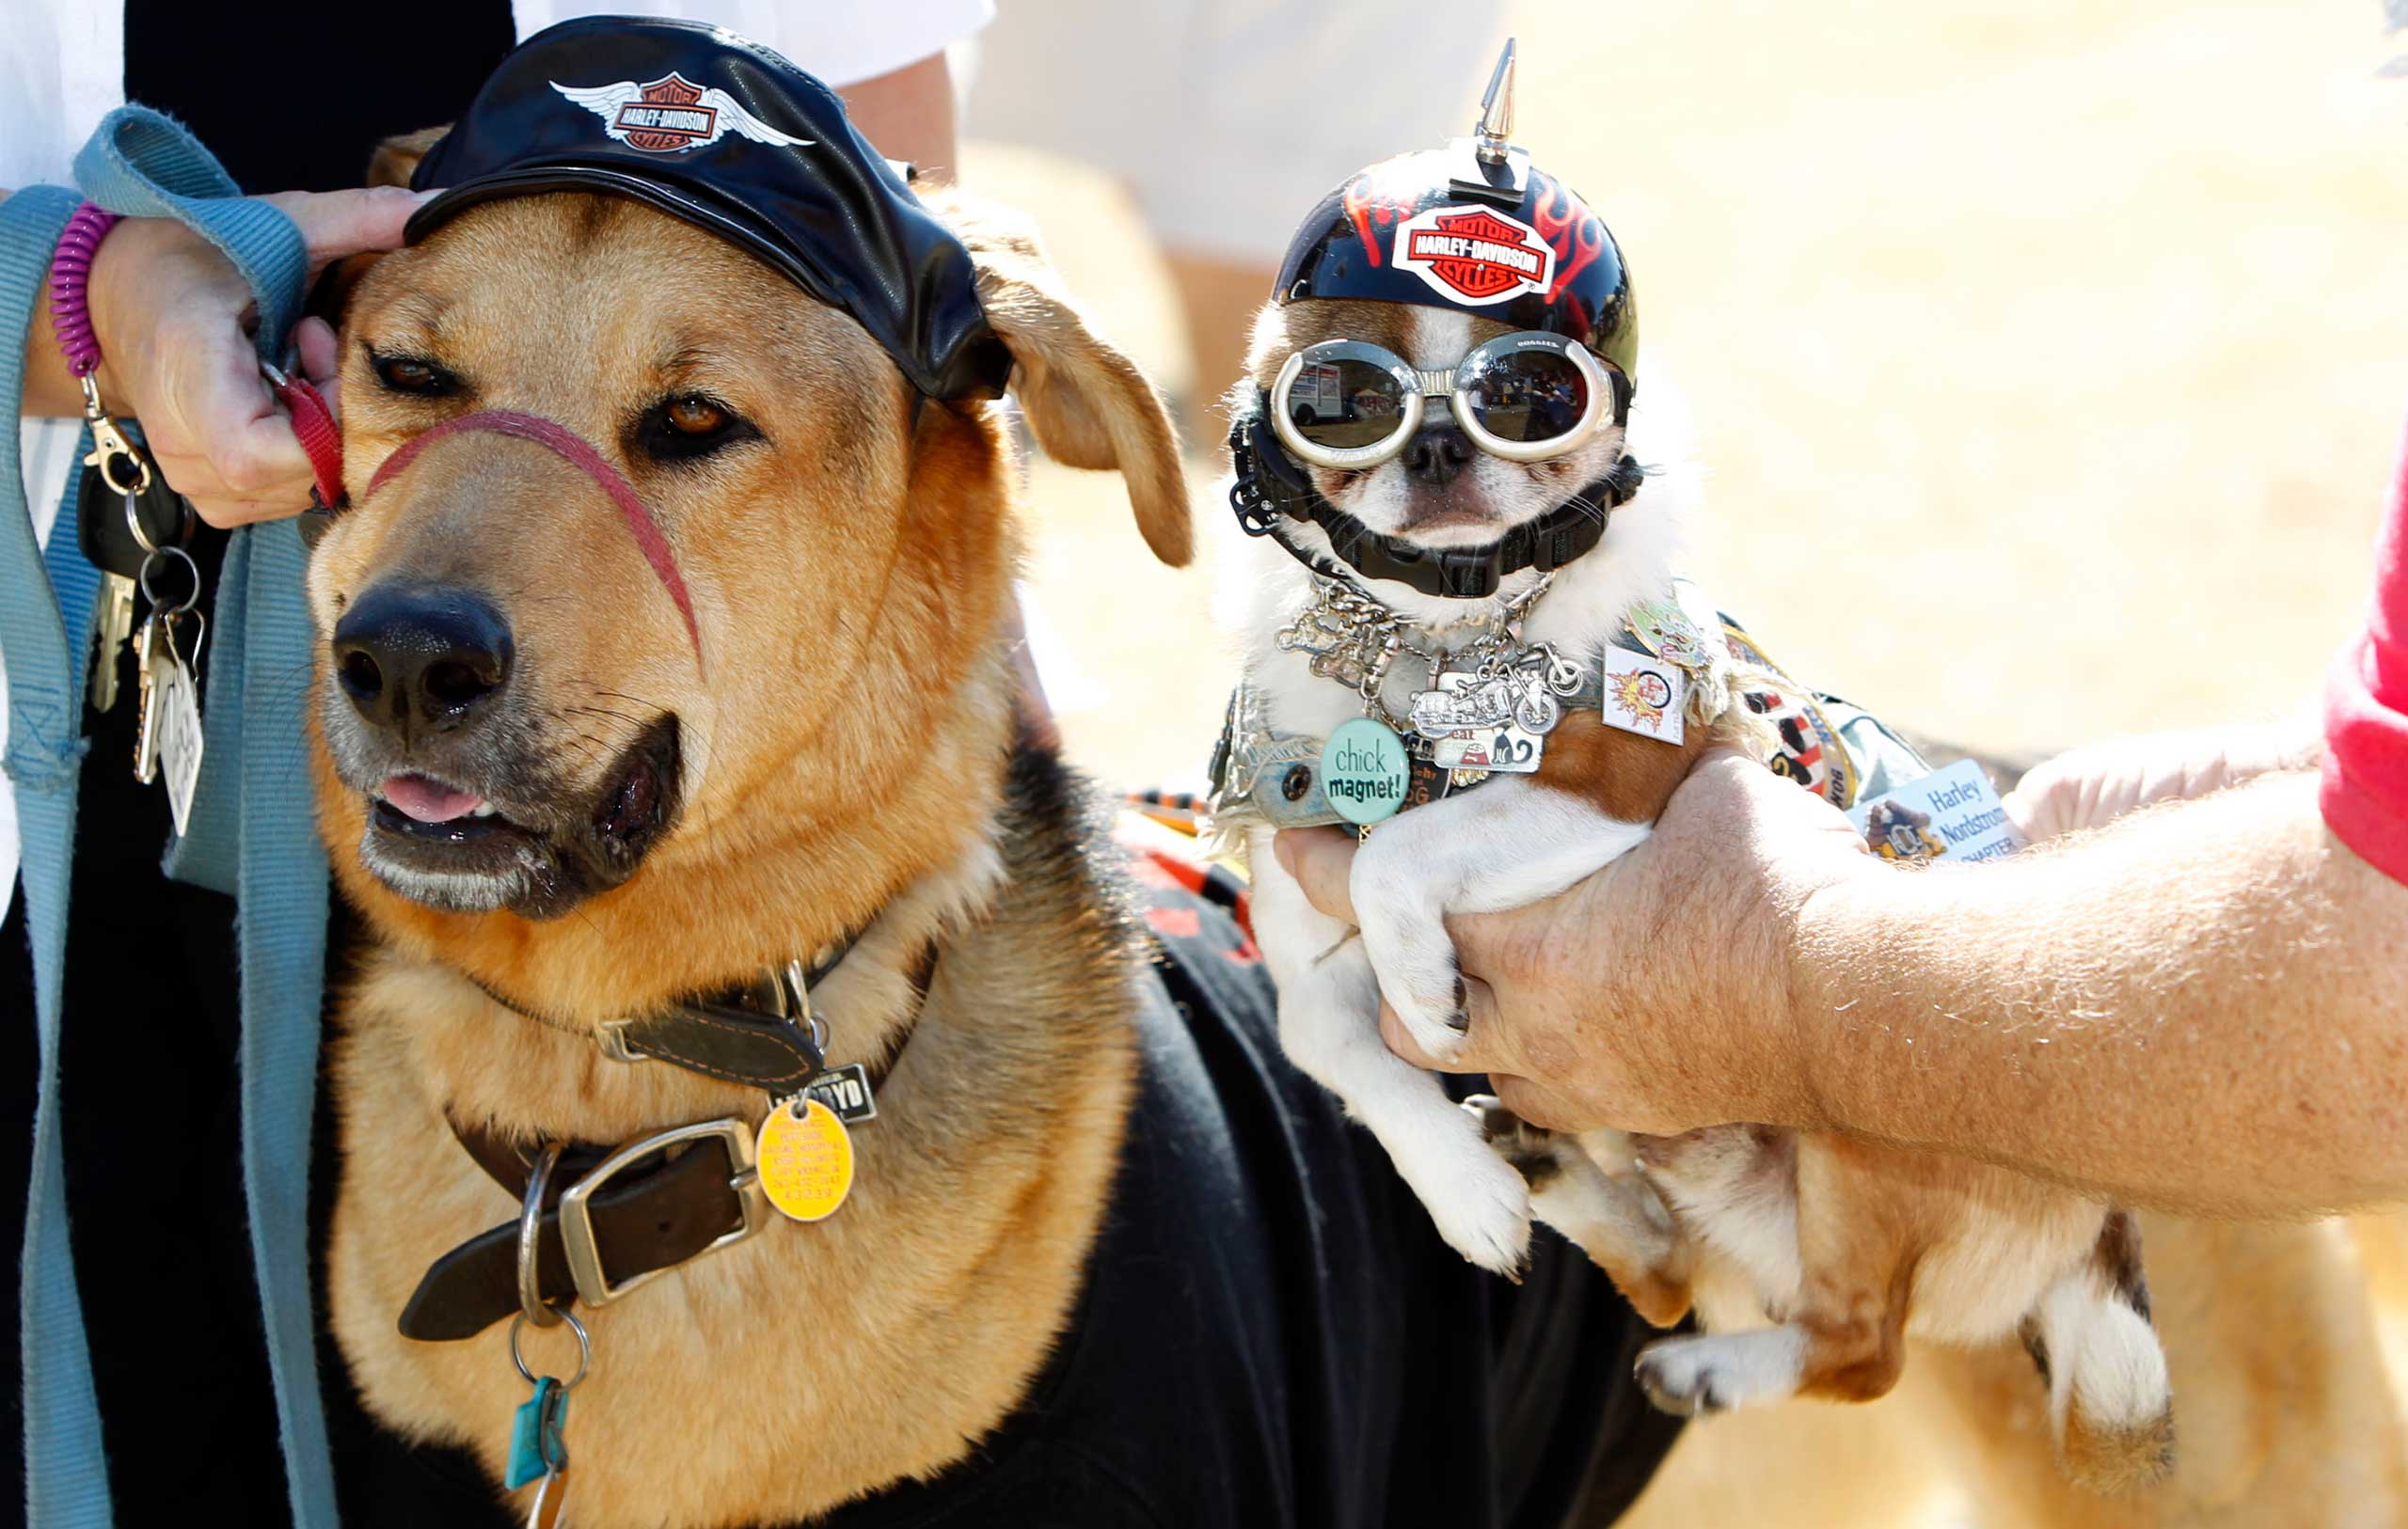 The most dogs in costumed attire gathered in a single location is 426 dogs.